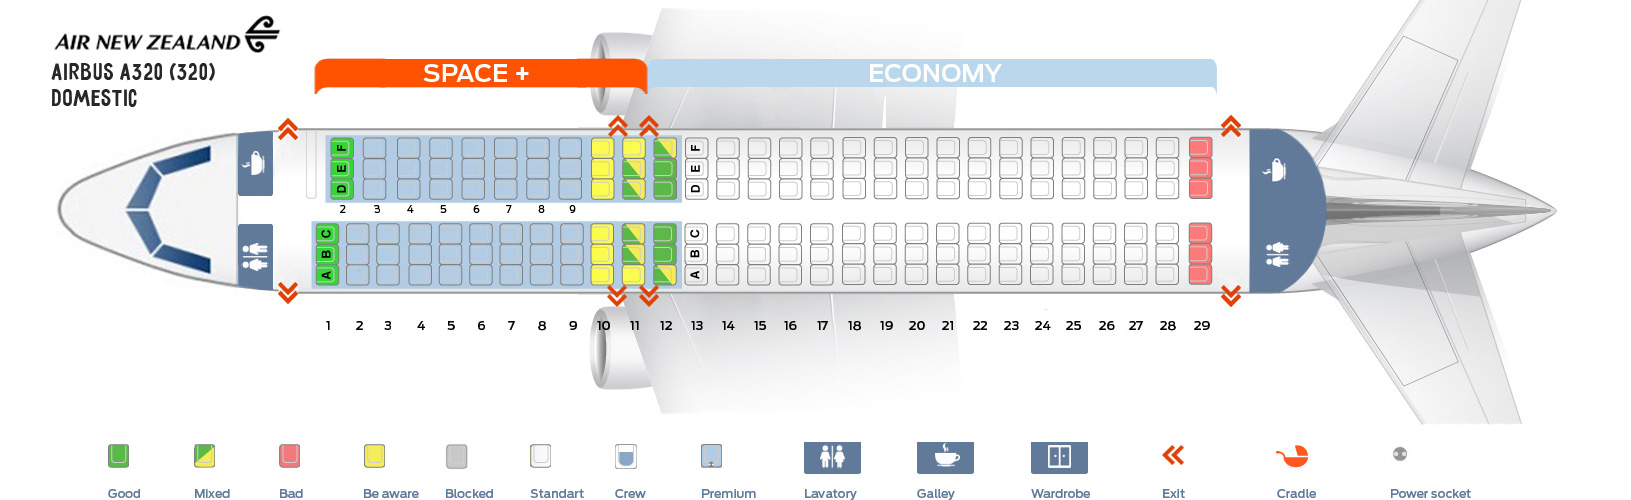 Seat Map Airbus A320 Domestic Air New Zealand